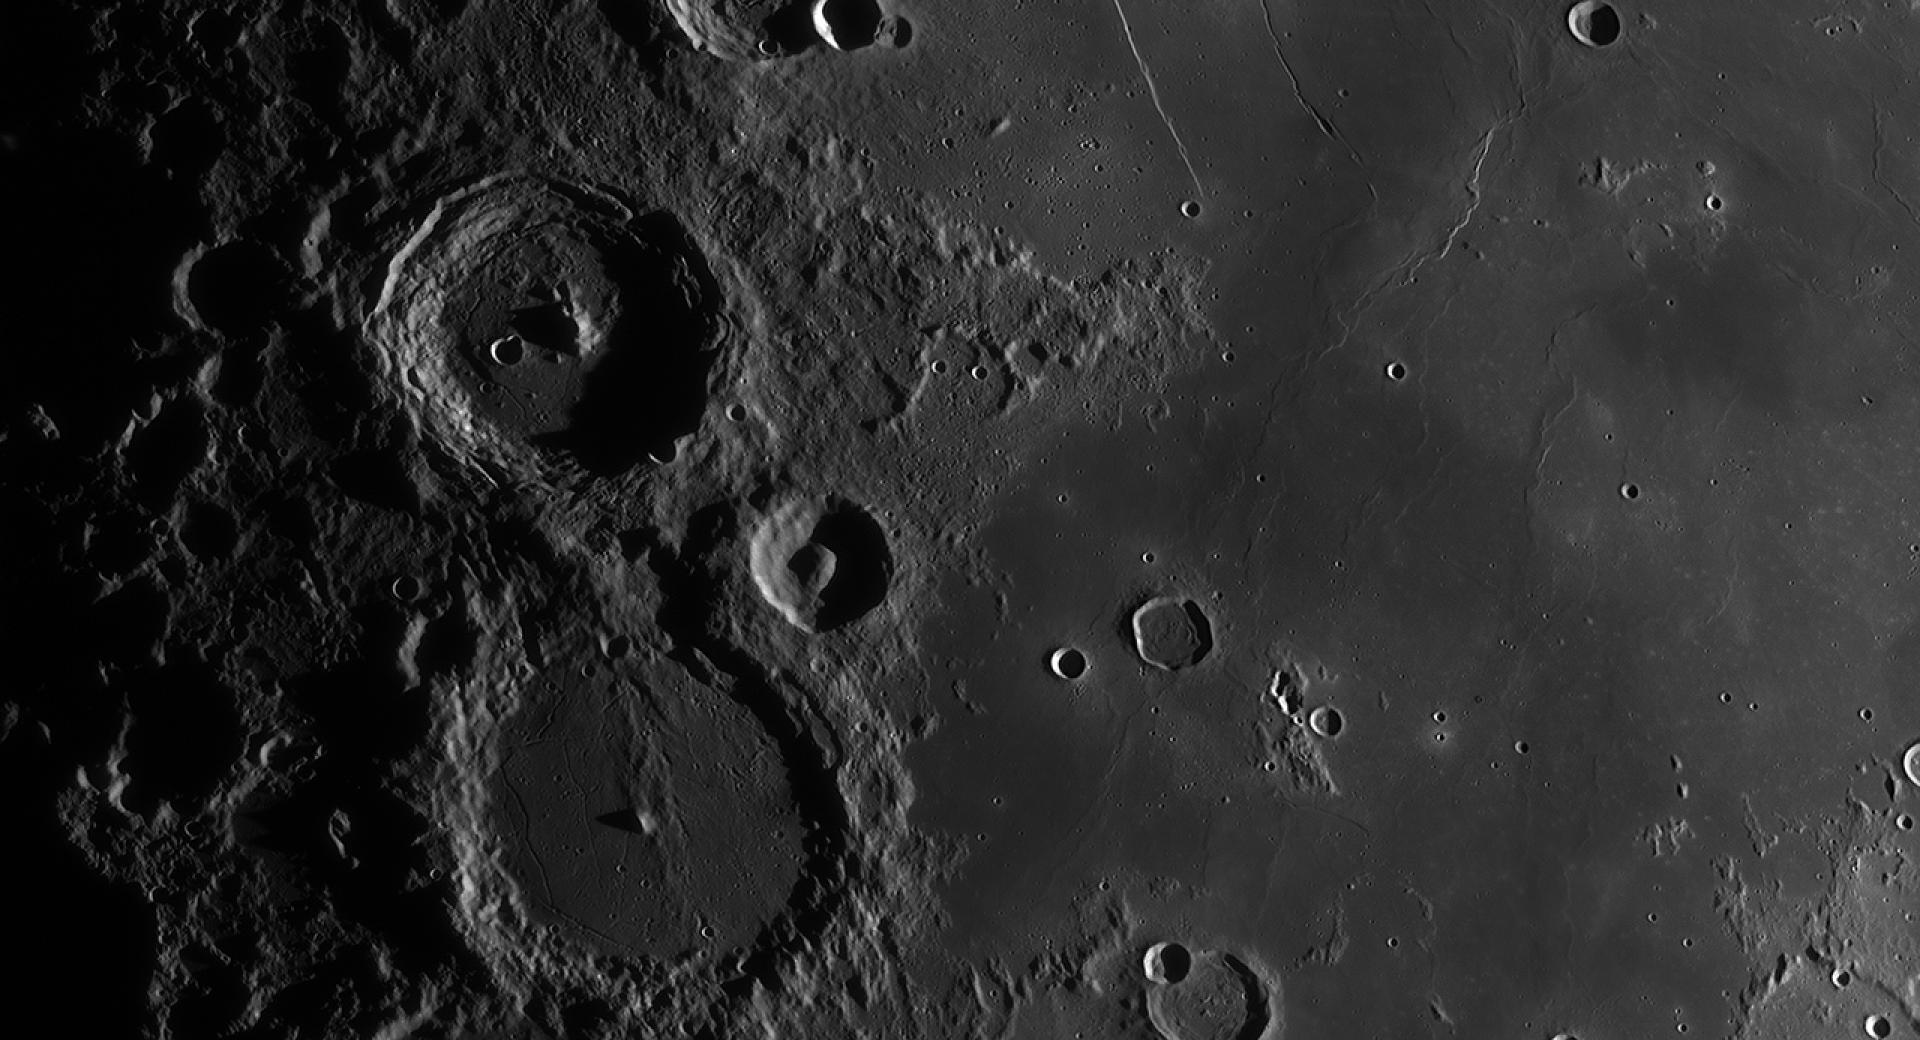 Evening in the Ptolemaeus chain and Rupes Recta region Jordi Delpeix Borrell RU